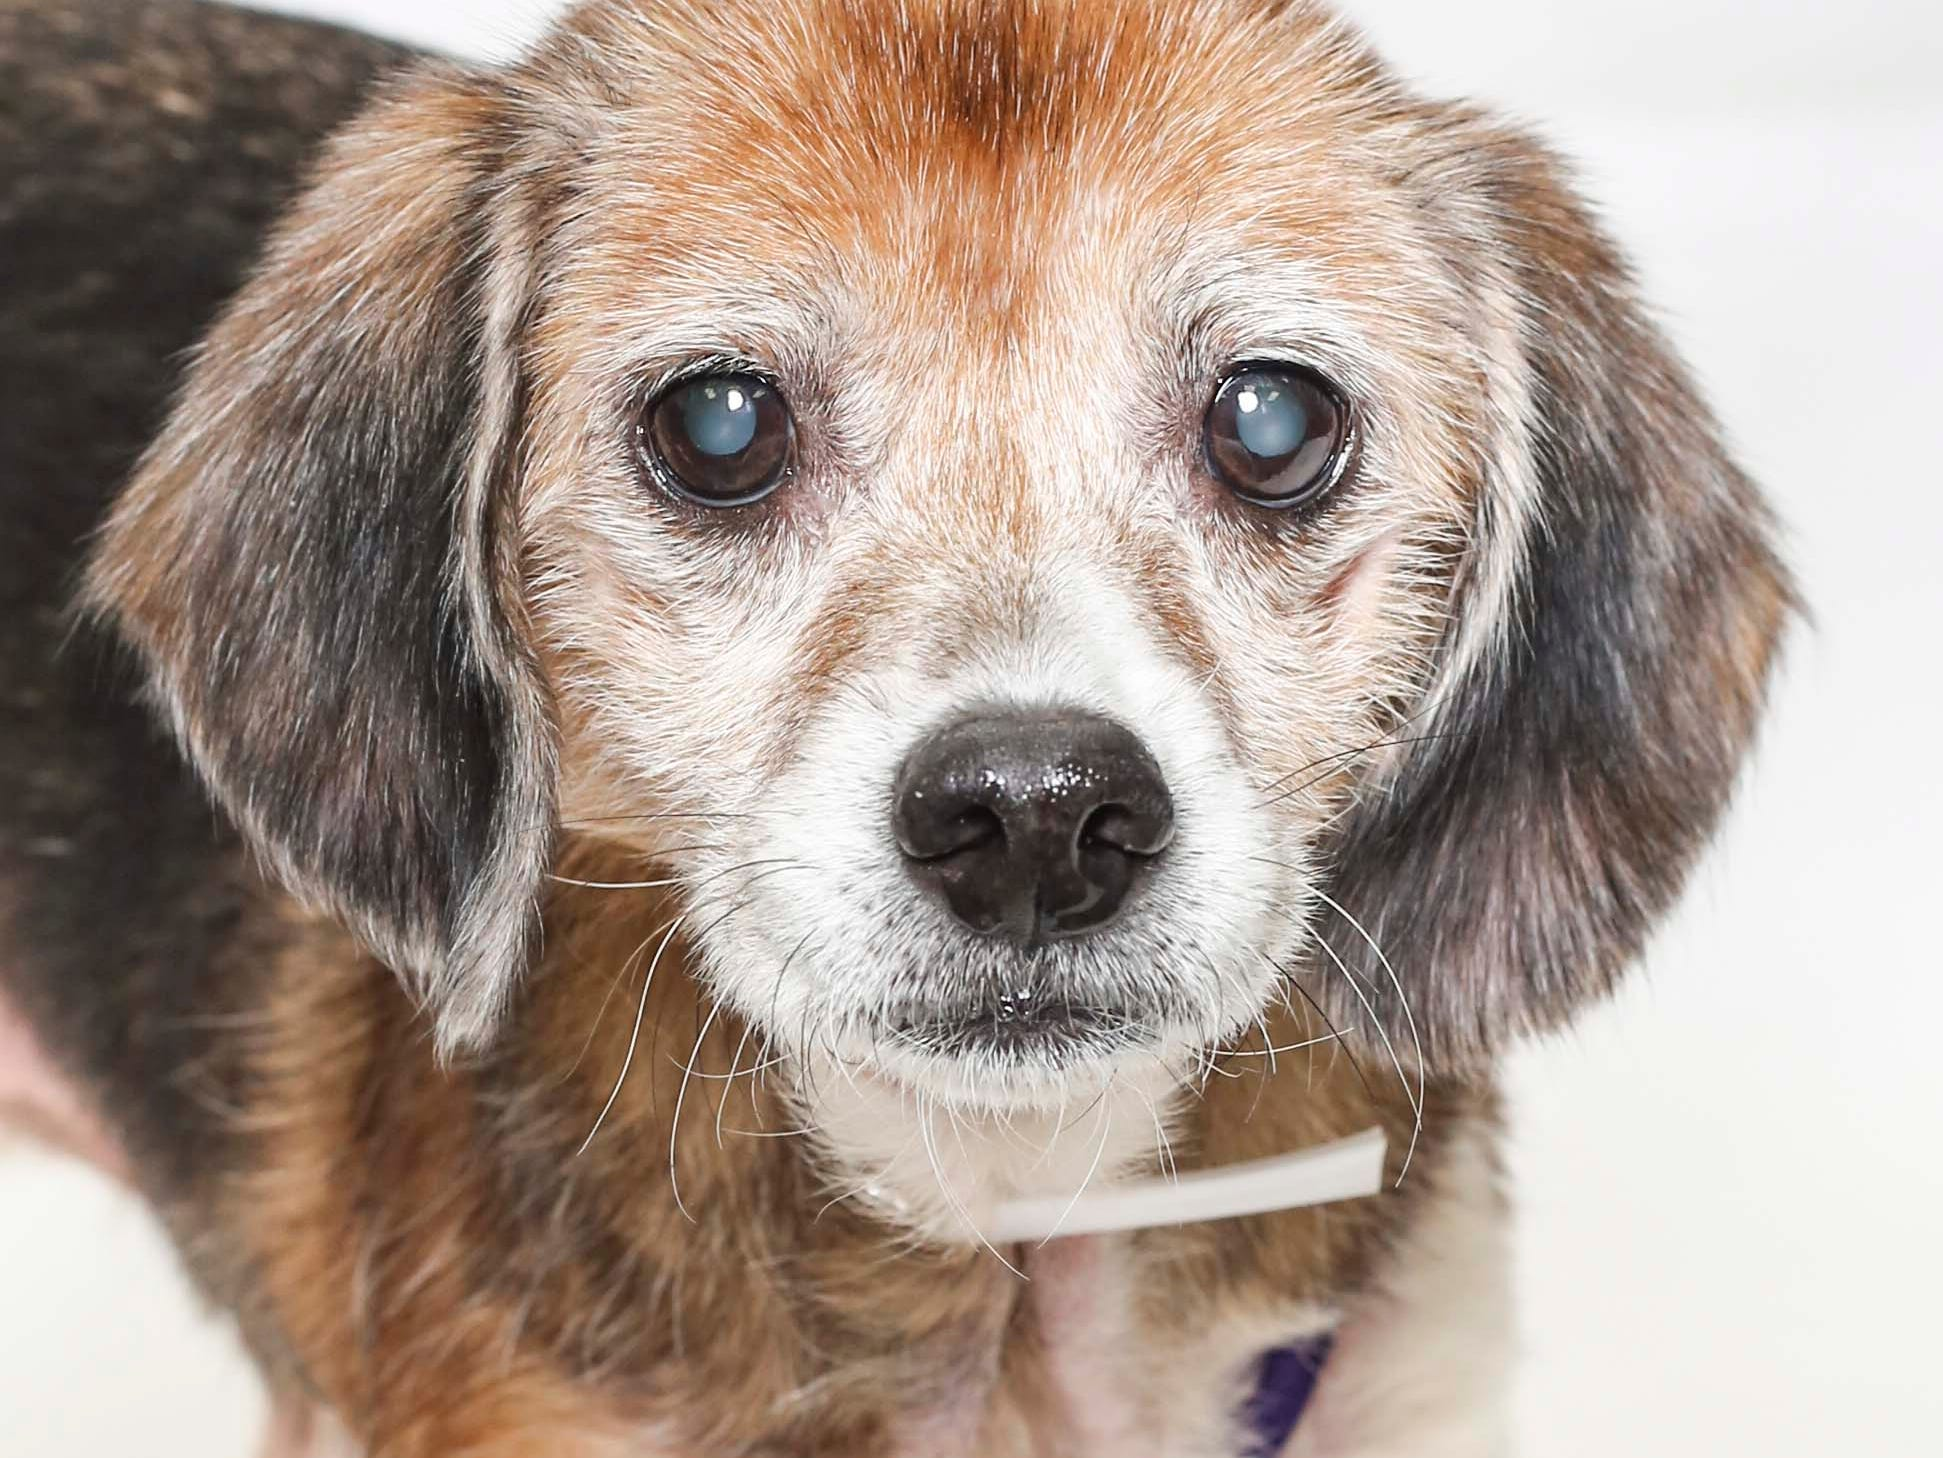 Bailey is a fuzzy, high-spirited, adorable senior dog who deserves to be spoiled and loved for the first time in her life. She's fully vetted and ready to go home today. Naps are her favorite pastime along with eating as a hobby. Info: young-williams.org